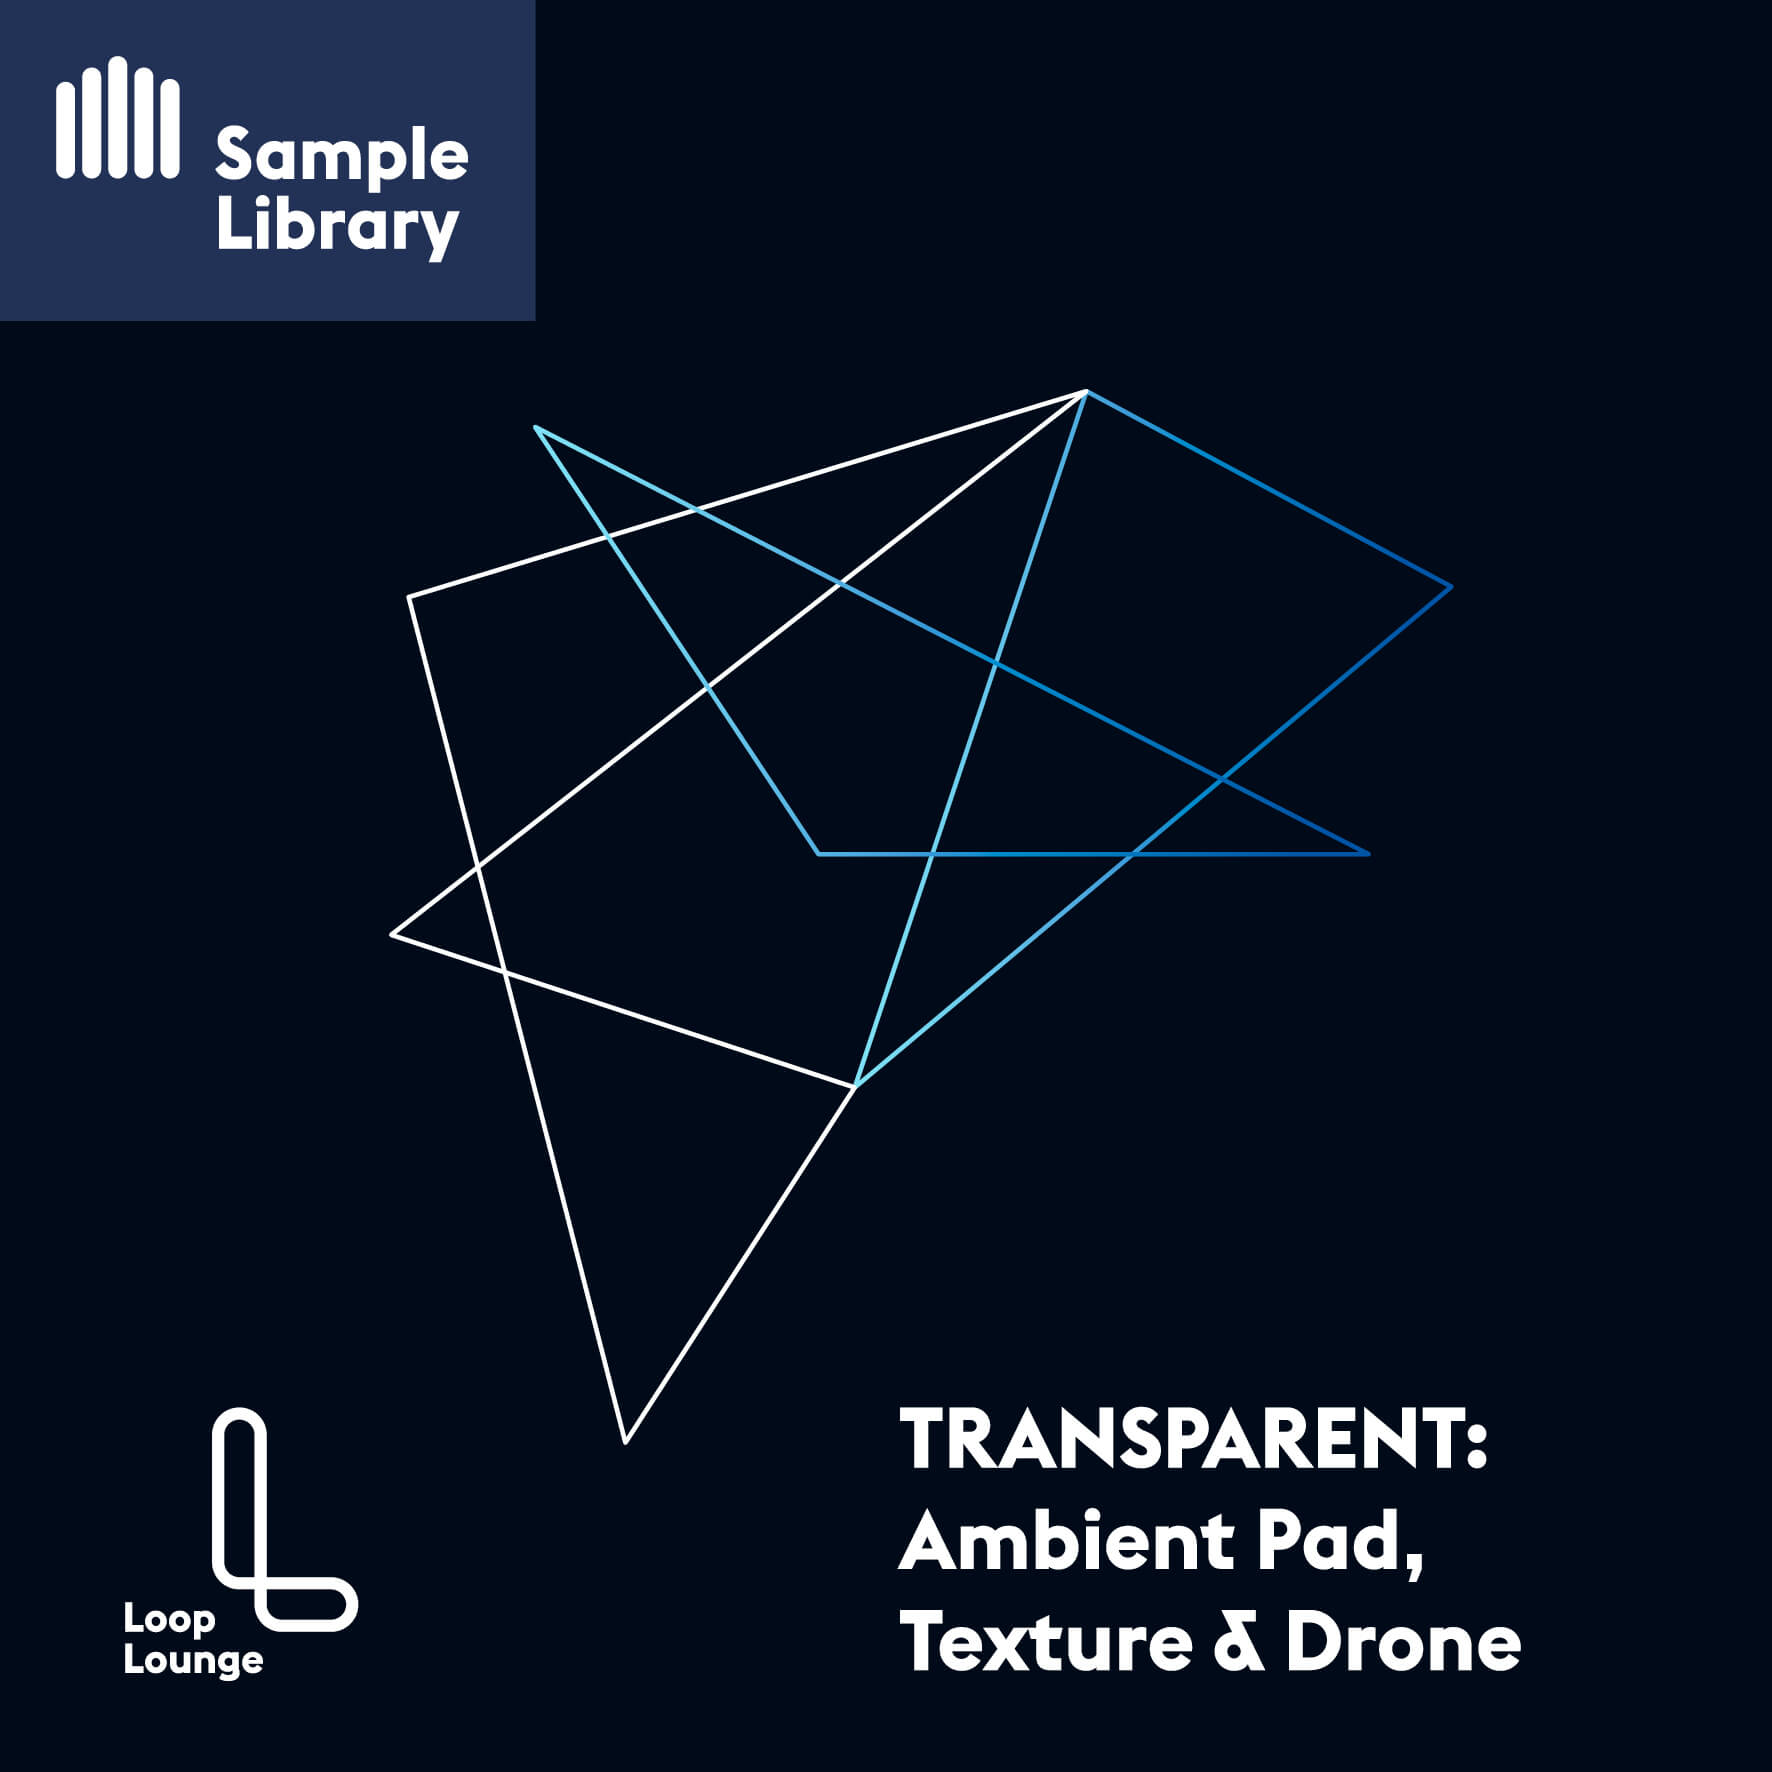 TRANSPARENT: Ambient Pad, Texture & Drone